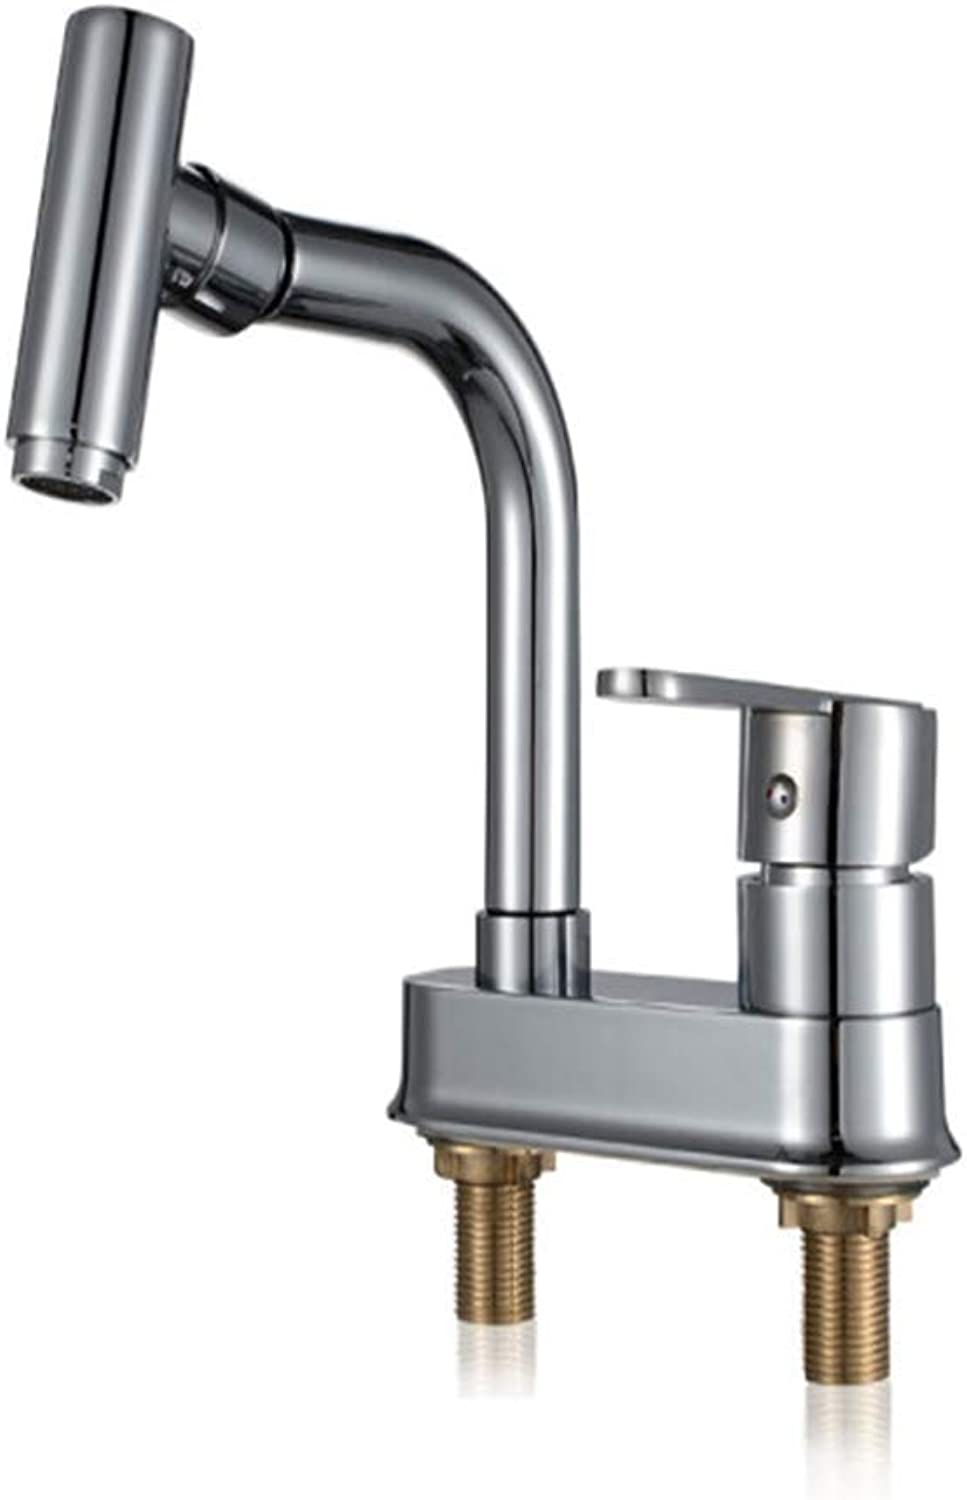 Kitchen Taps Faucet Modern Kitchen Sink Taps Stainless Steelbathroom Basin Faucet Cold and Hot Washbasin Faucet Toilet Double-Hole Three-Hole Faucet Washbasin Faucet Can redate